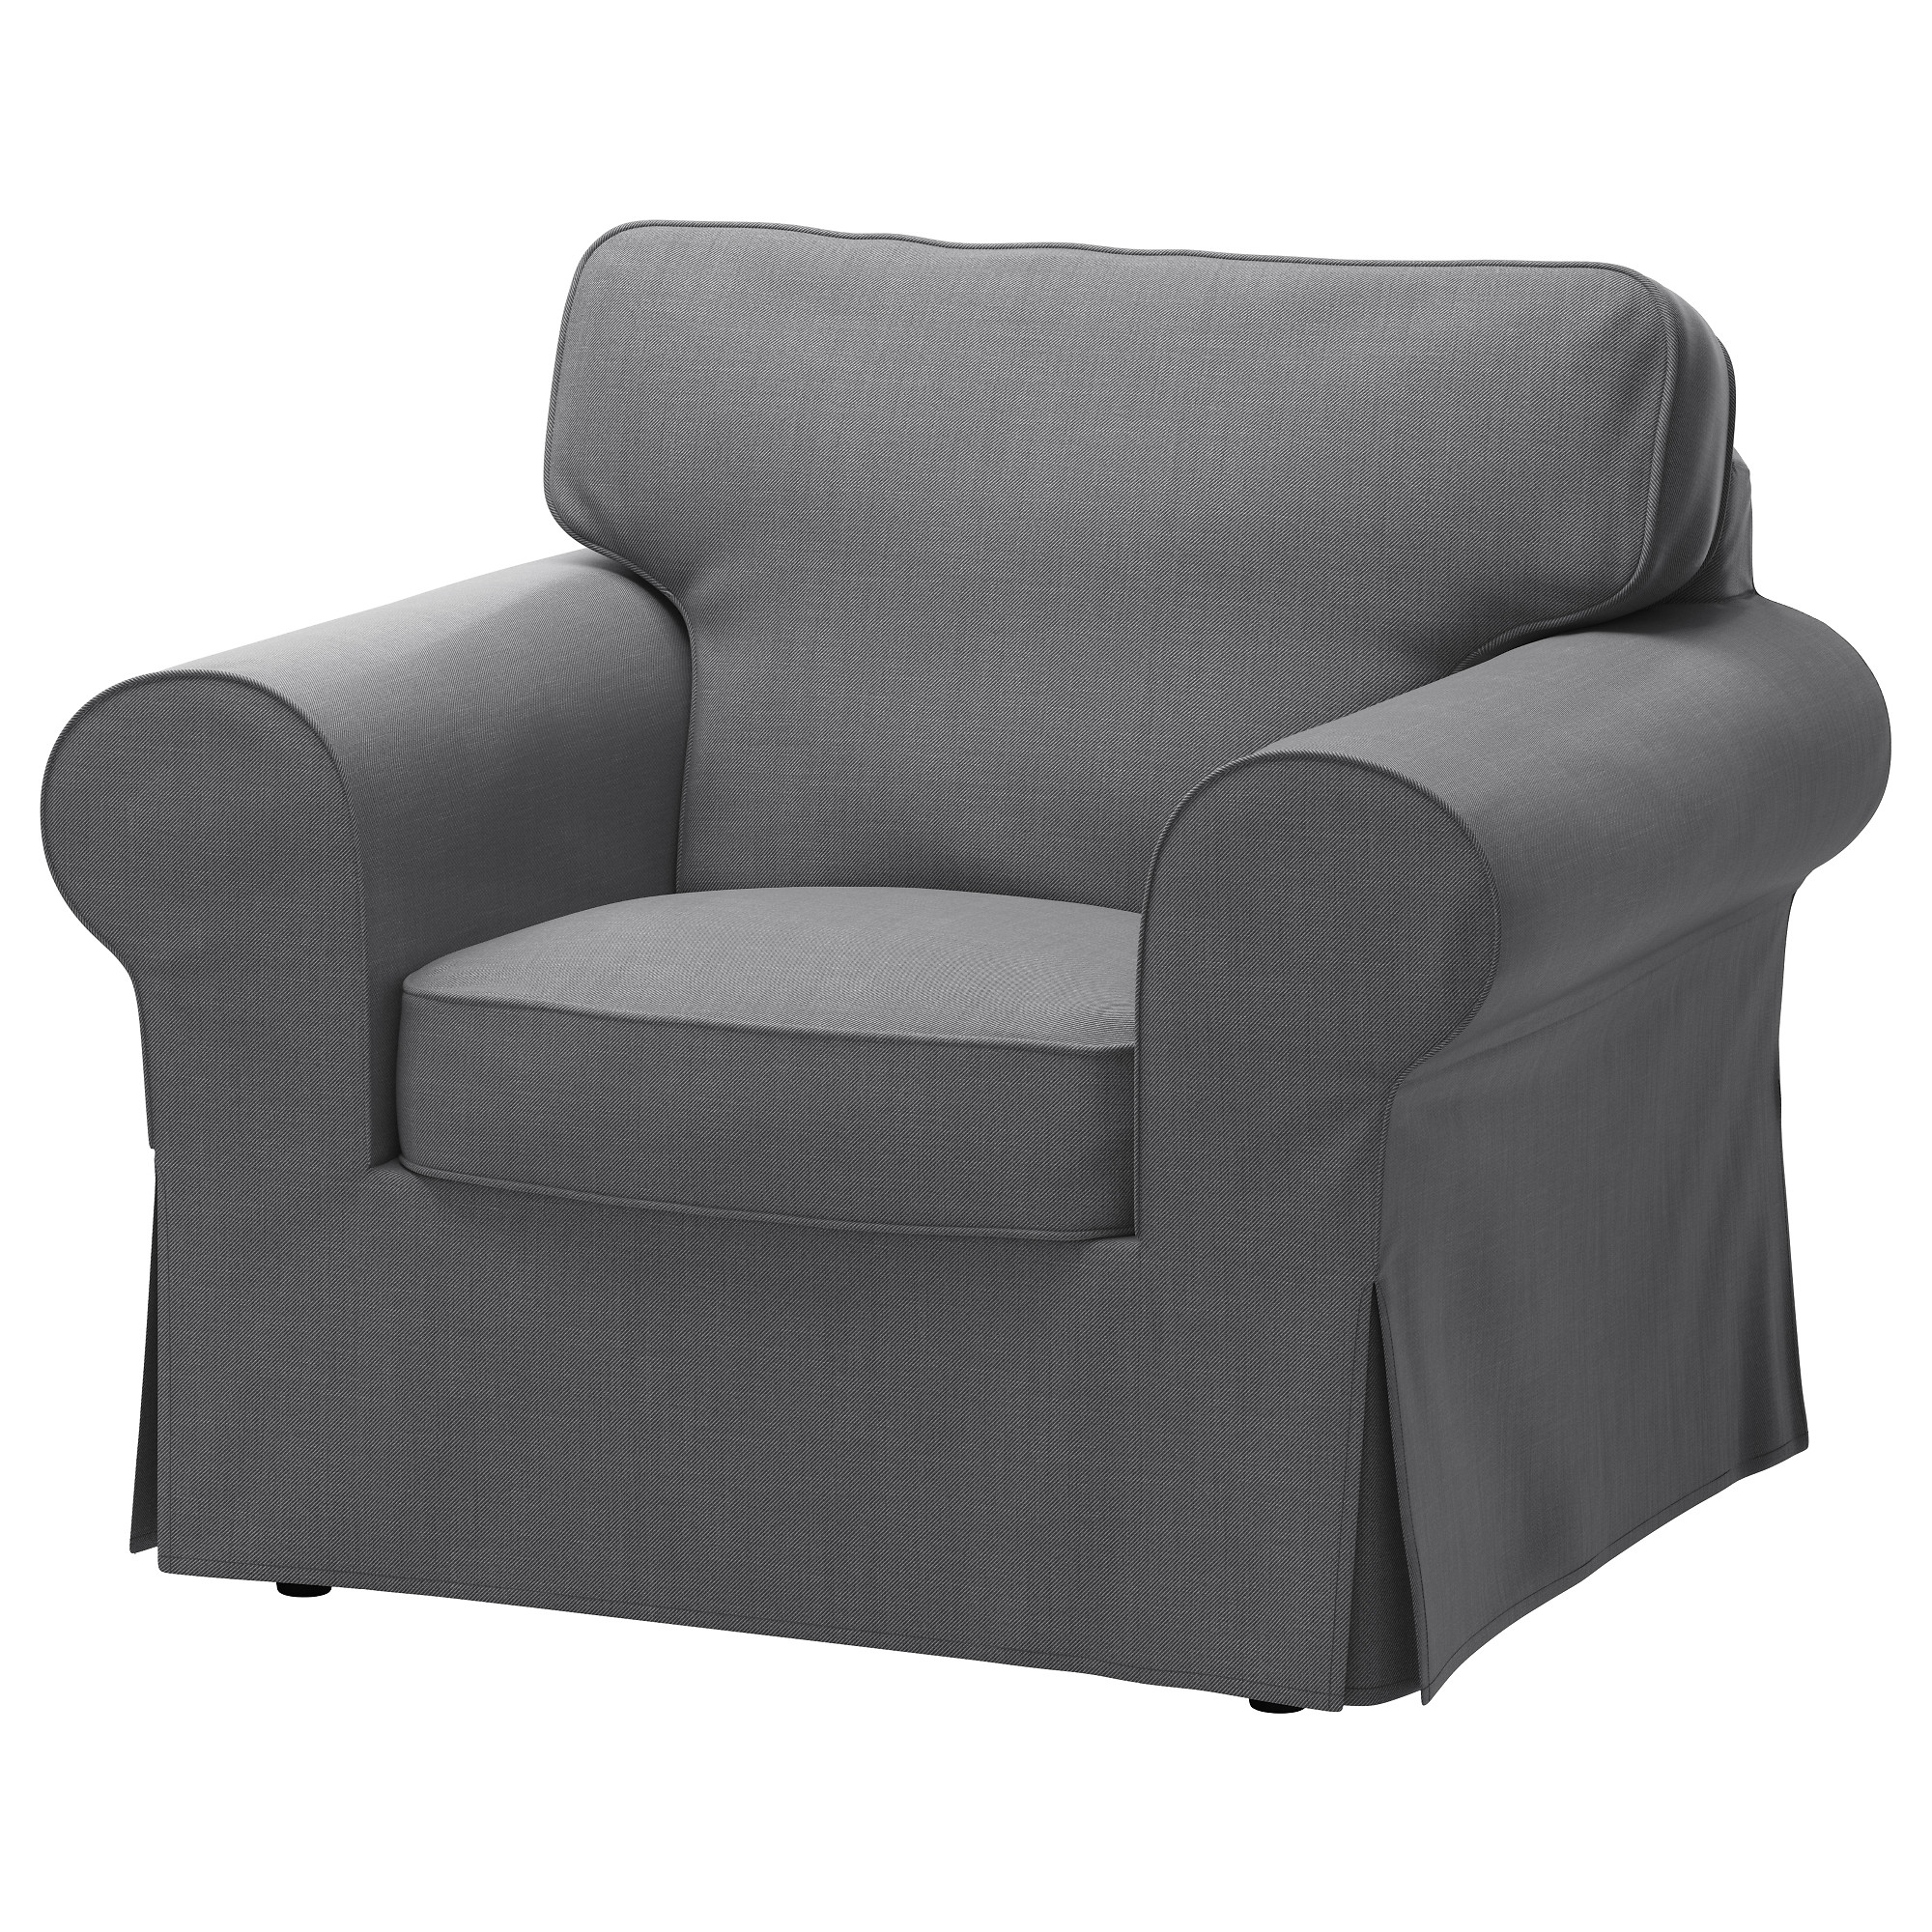 armchair ikea chair nordvalla dark products catalog ektorp ca en gray